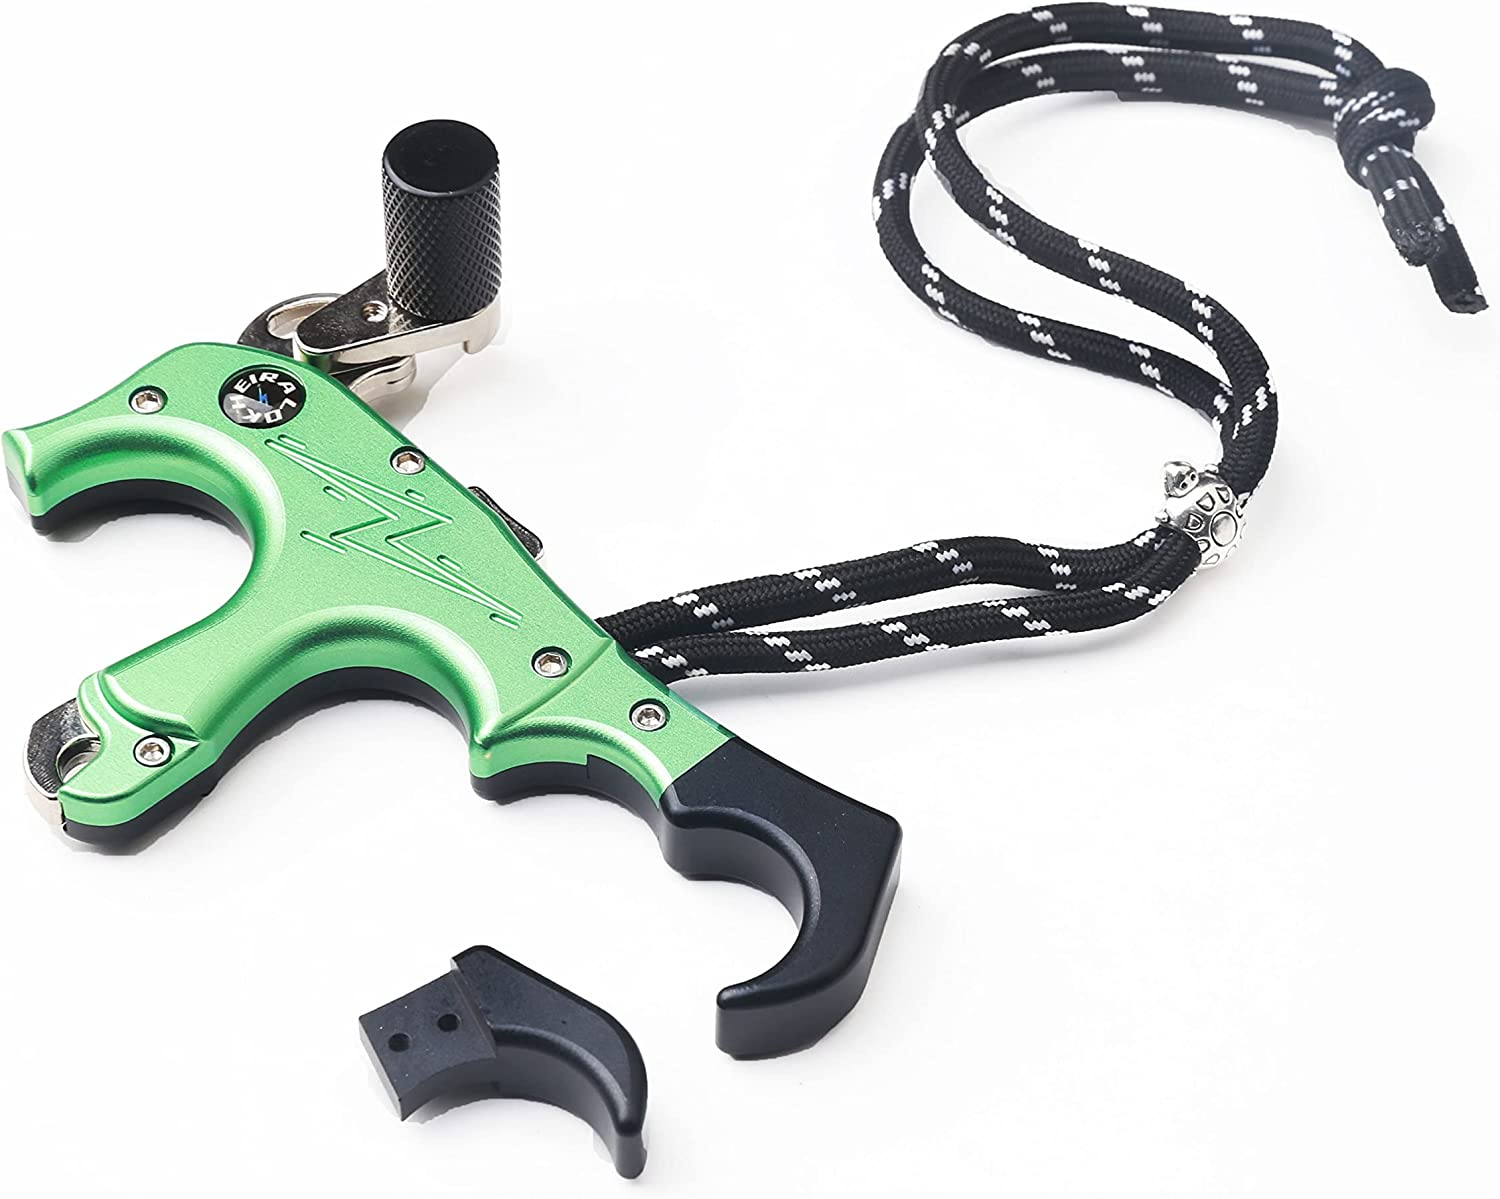 Bow Release Aids 3 or 4 Automatic famous New popularity Adjustable Grip Archer Fingers